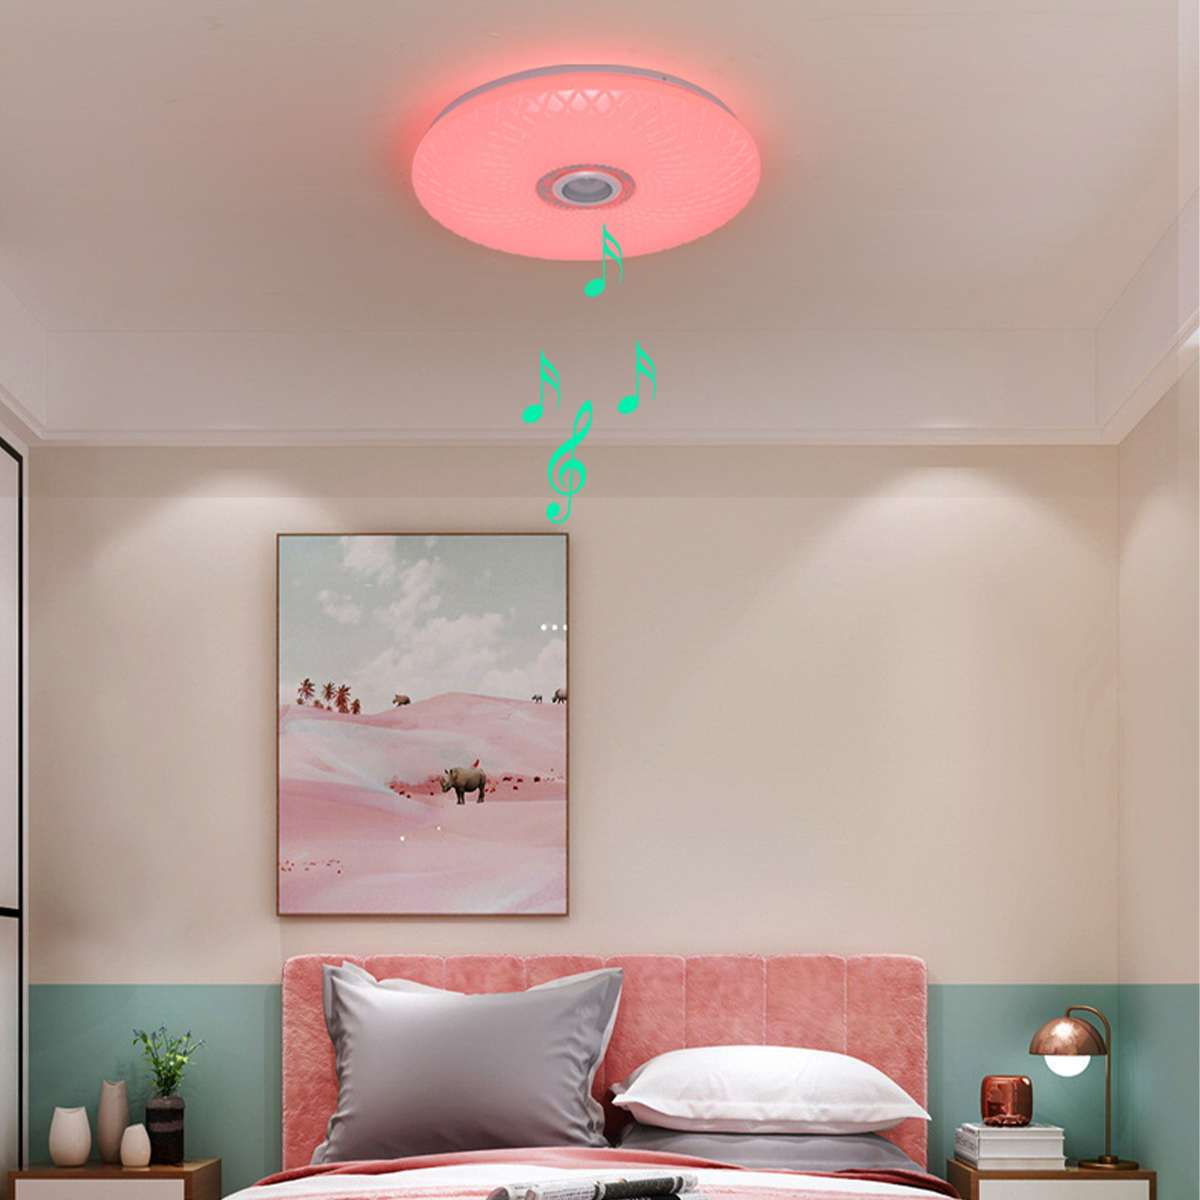 Hcf784b5cf4c54932b260dcef41752c07i Modern RGB LED Ceiling Light home lighing 36W/60W 40cm APP Remote Control bluetooth Music Light Bedroom Lamp Smart Ceiling Lamp